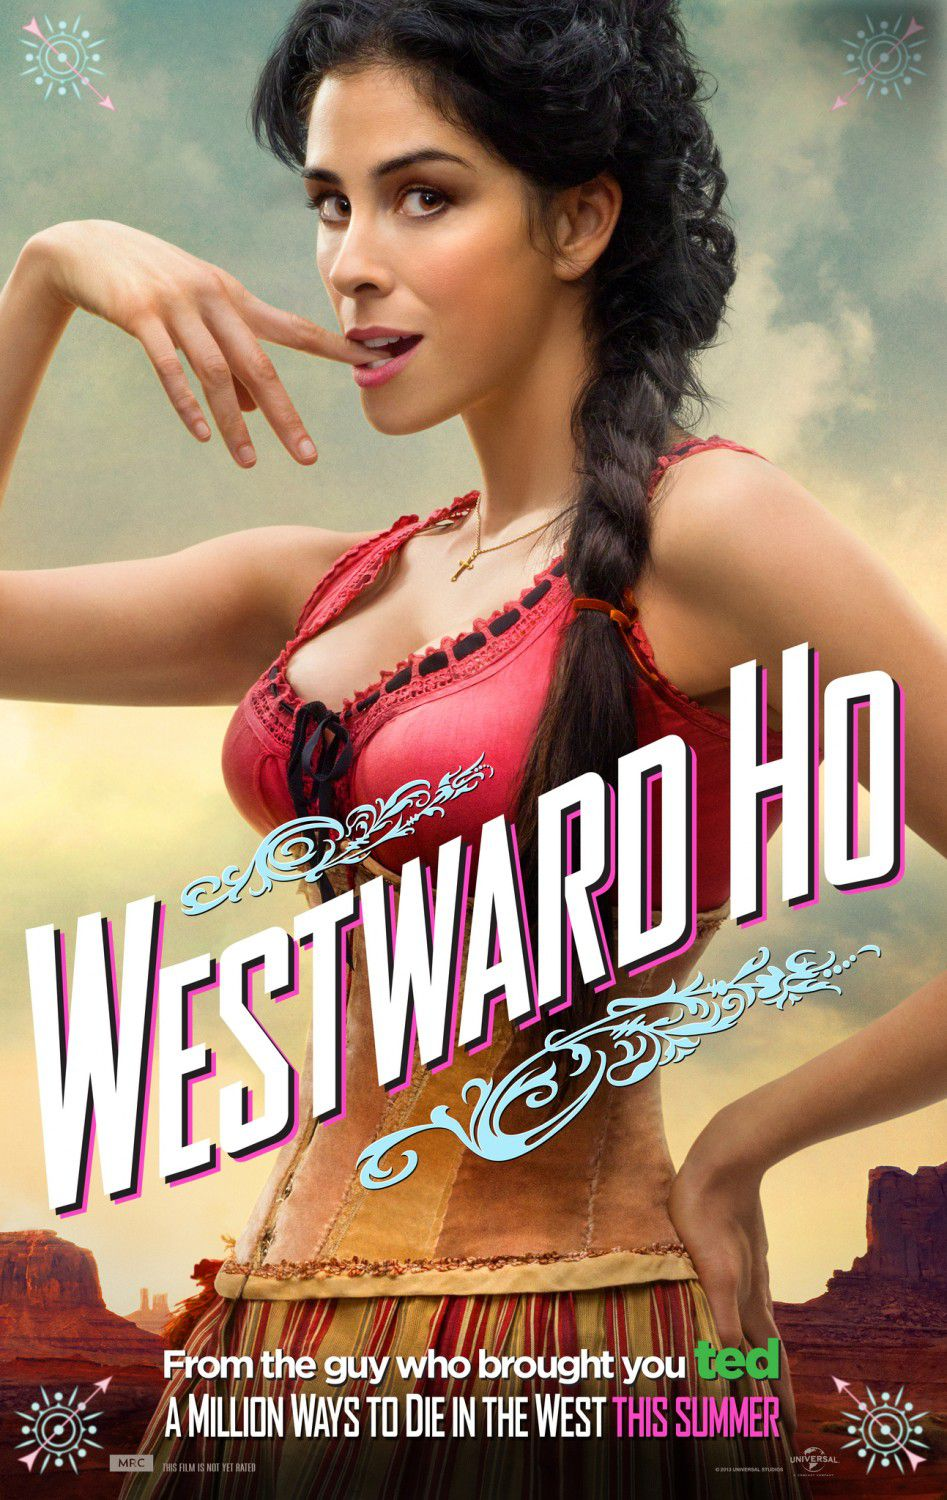 Million ways to Die in the West - Un milione di modi per morire nel West - Westward Ho